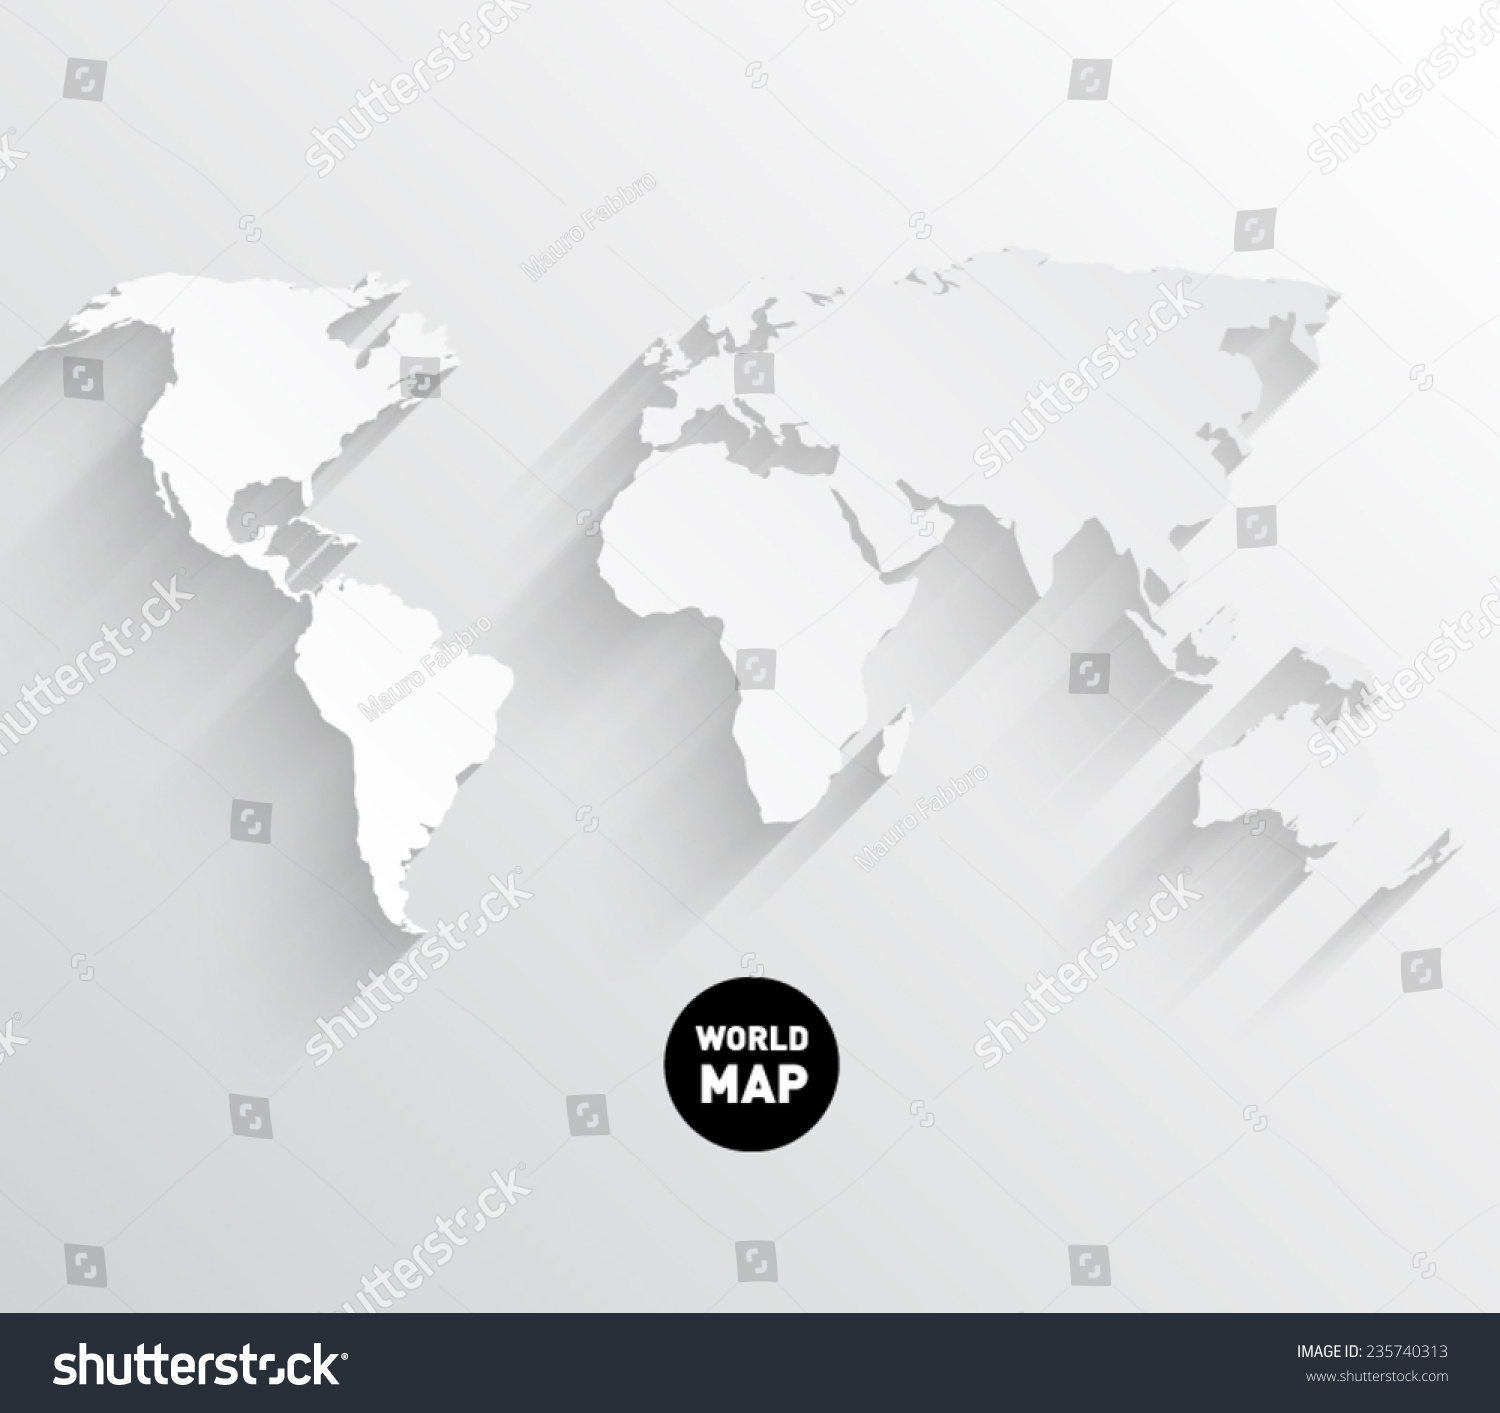 vector world map background with long shadow and flat design style clean and modern